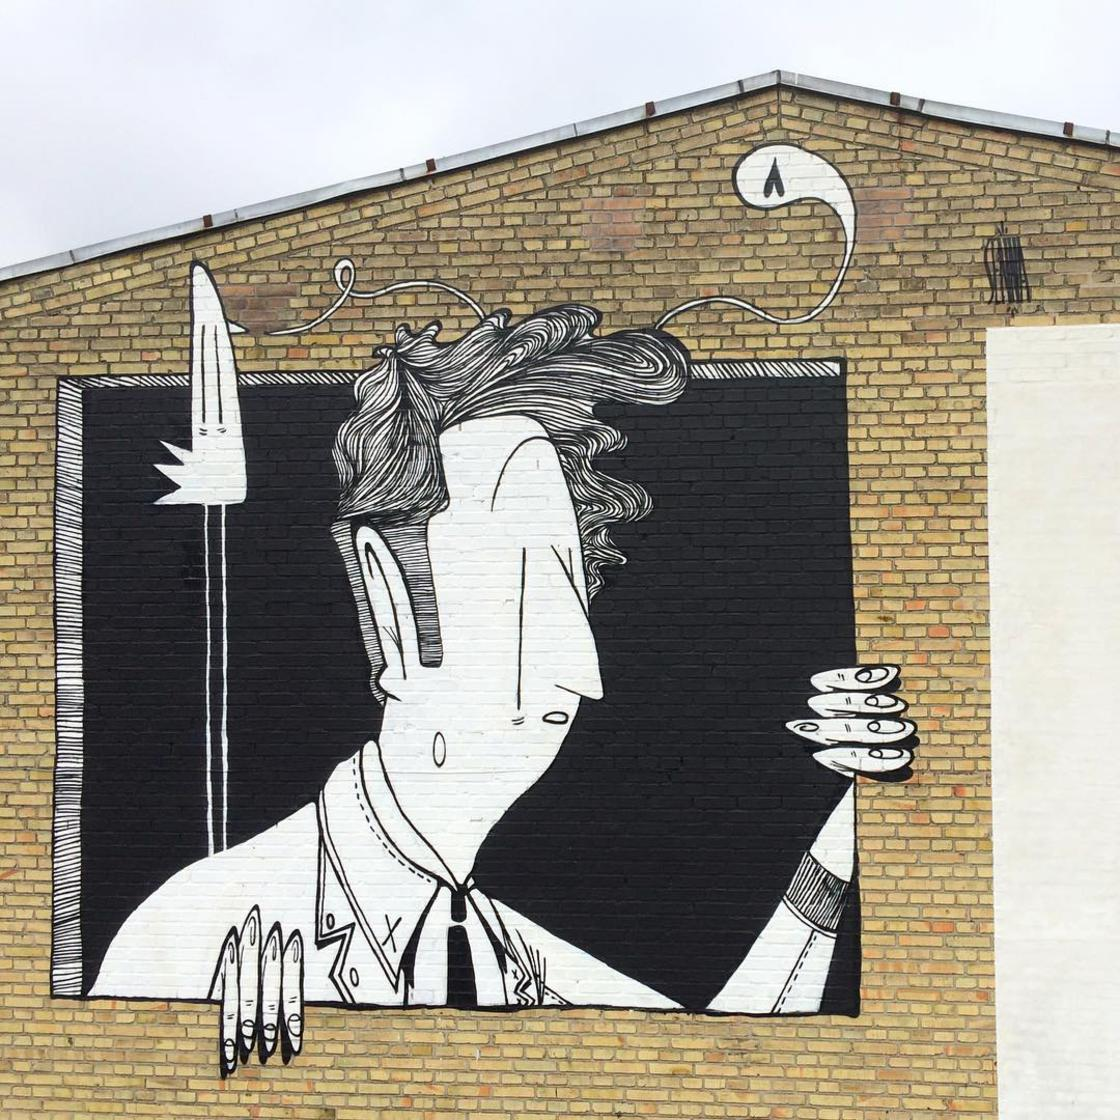 The positive and poetic street art creations by Alex Senna